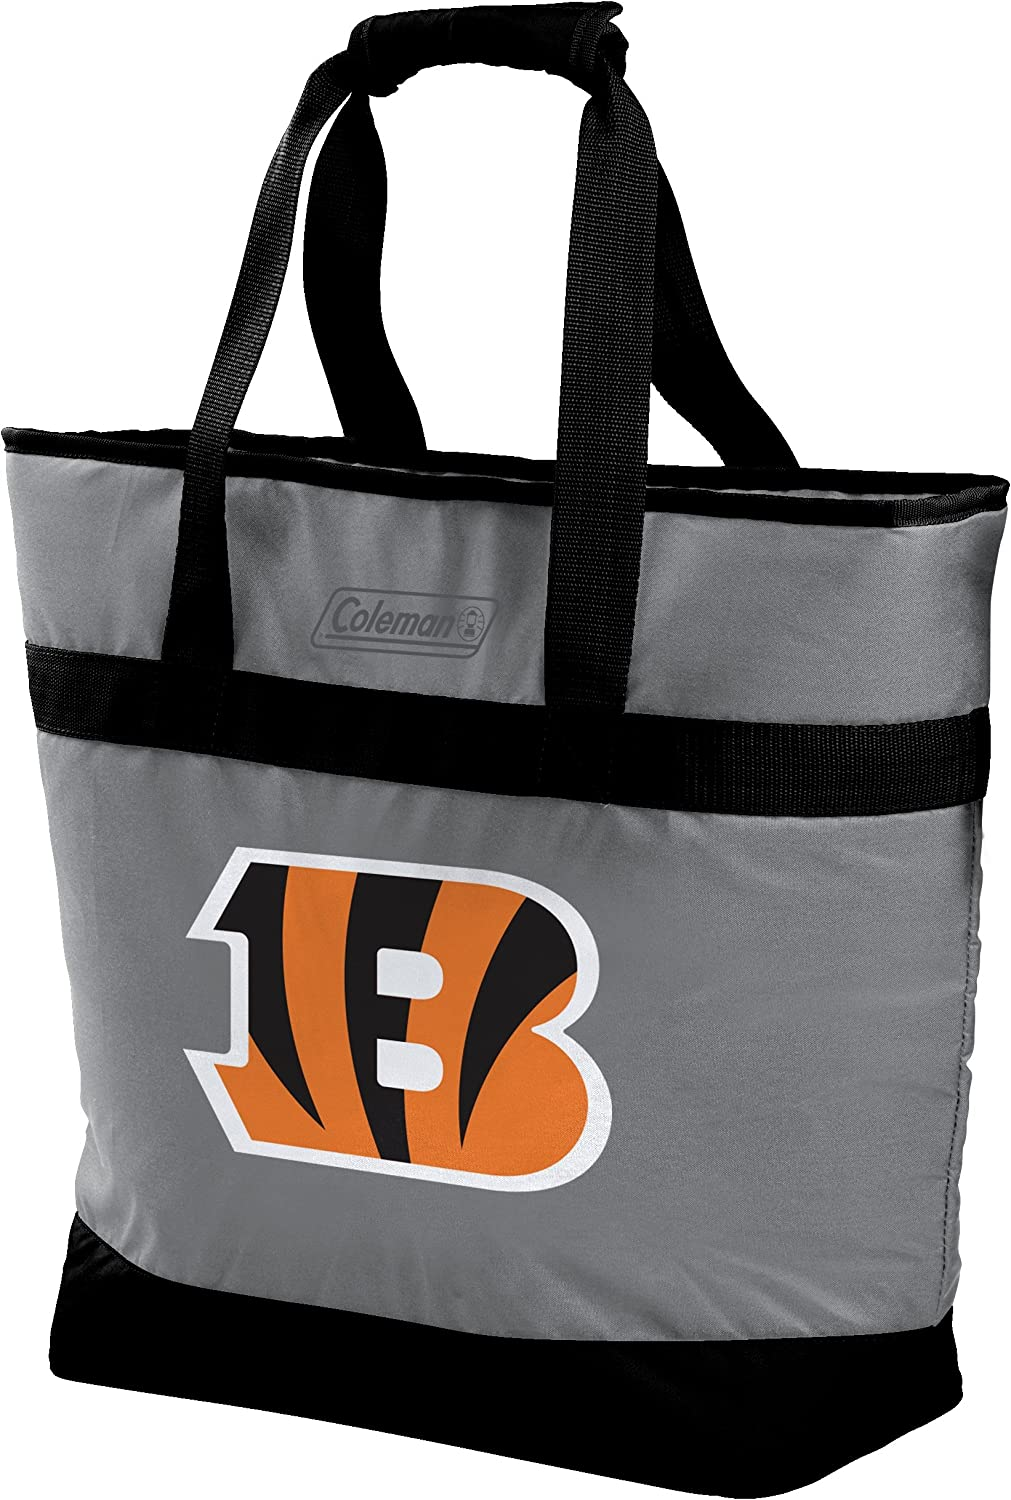 NFL Soft-Side Insulated Large Tote Cooler Bag 30-Can Capacity ALL TEAM OPTIONS